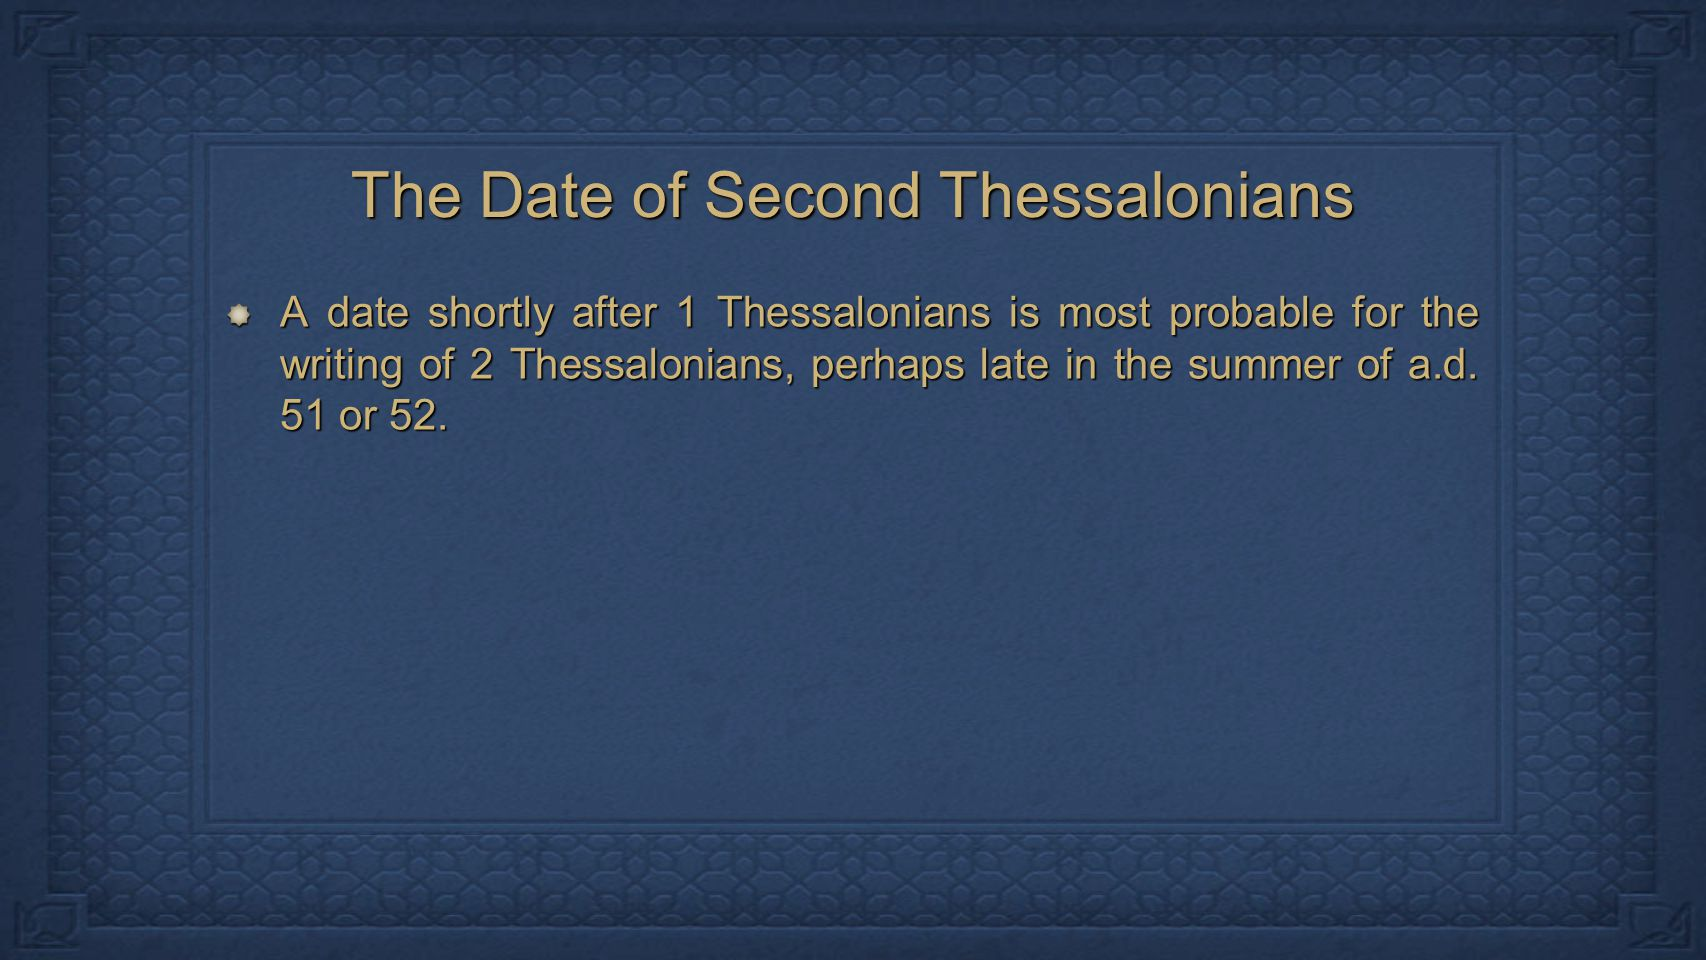 The Date of Second Thessalonians A date shortly after 1 Thessalonians is most probable for the writing of 2 Thessalonians, perhaps late in the summer of a.d.